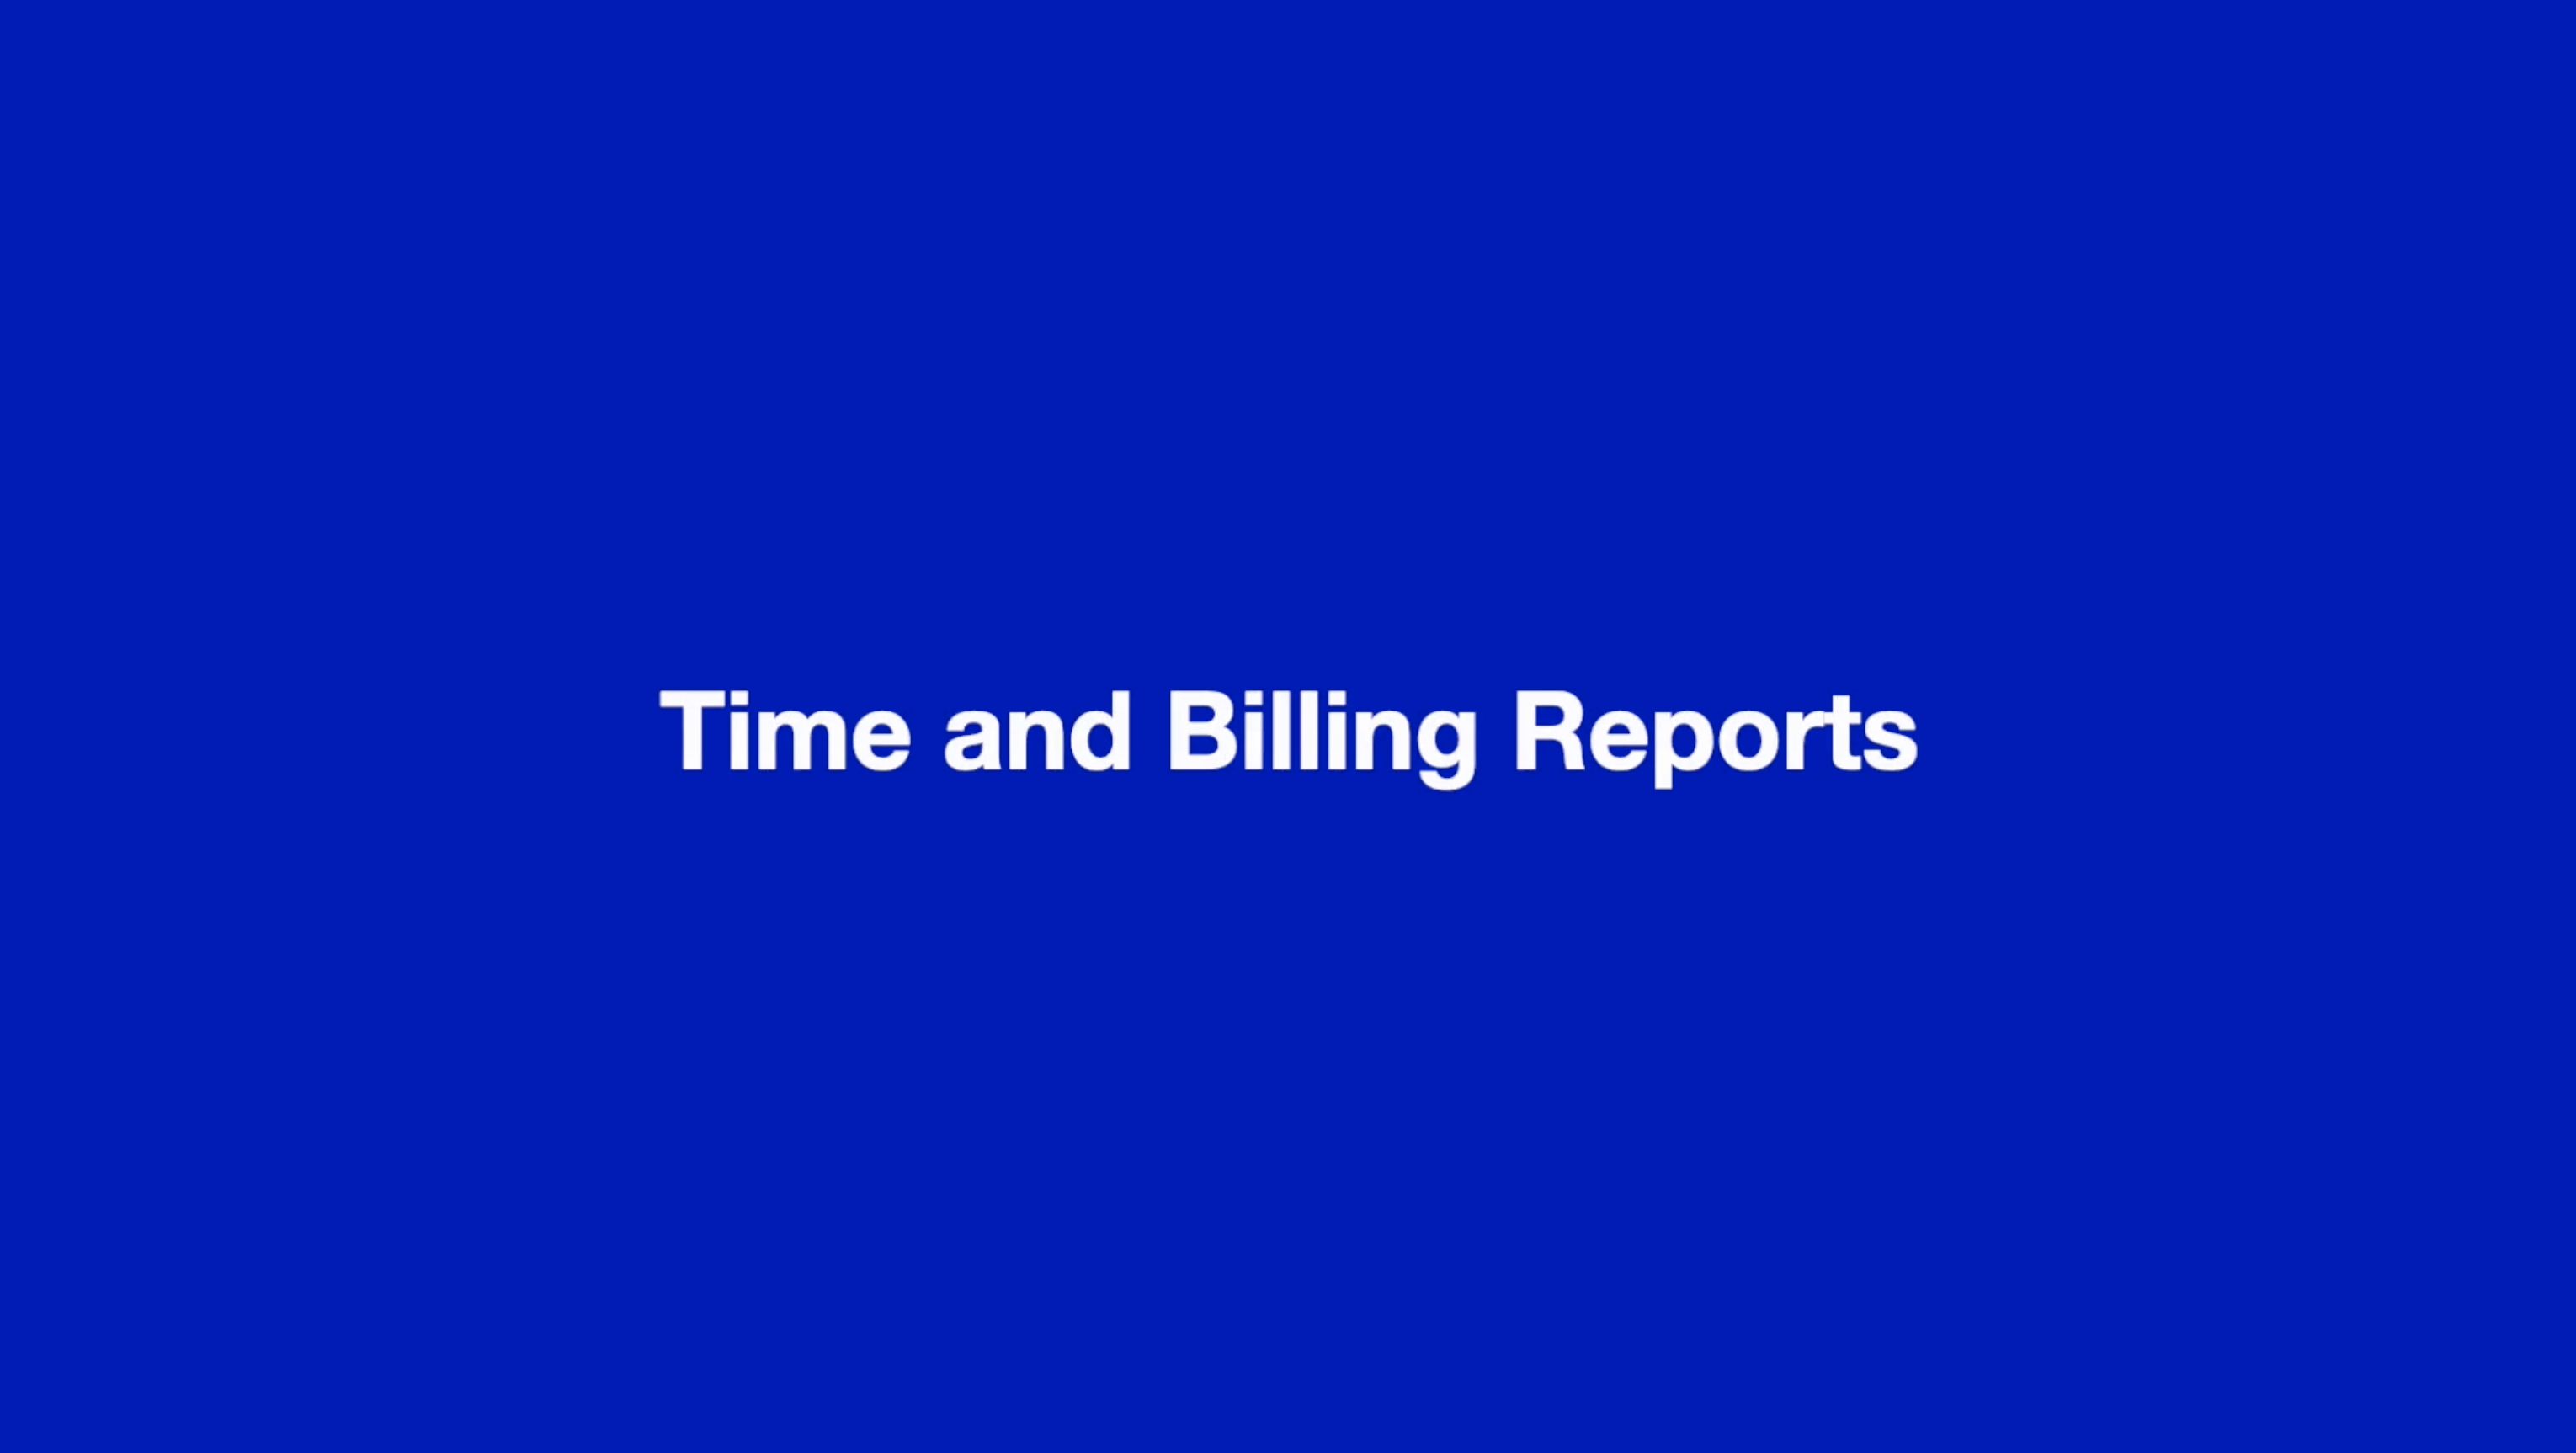 Time and Billing Reports thumbnail